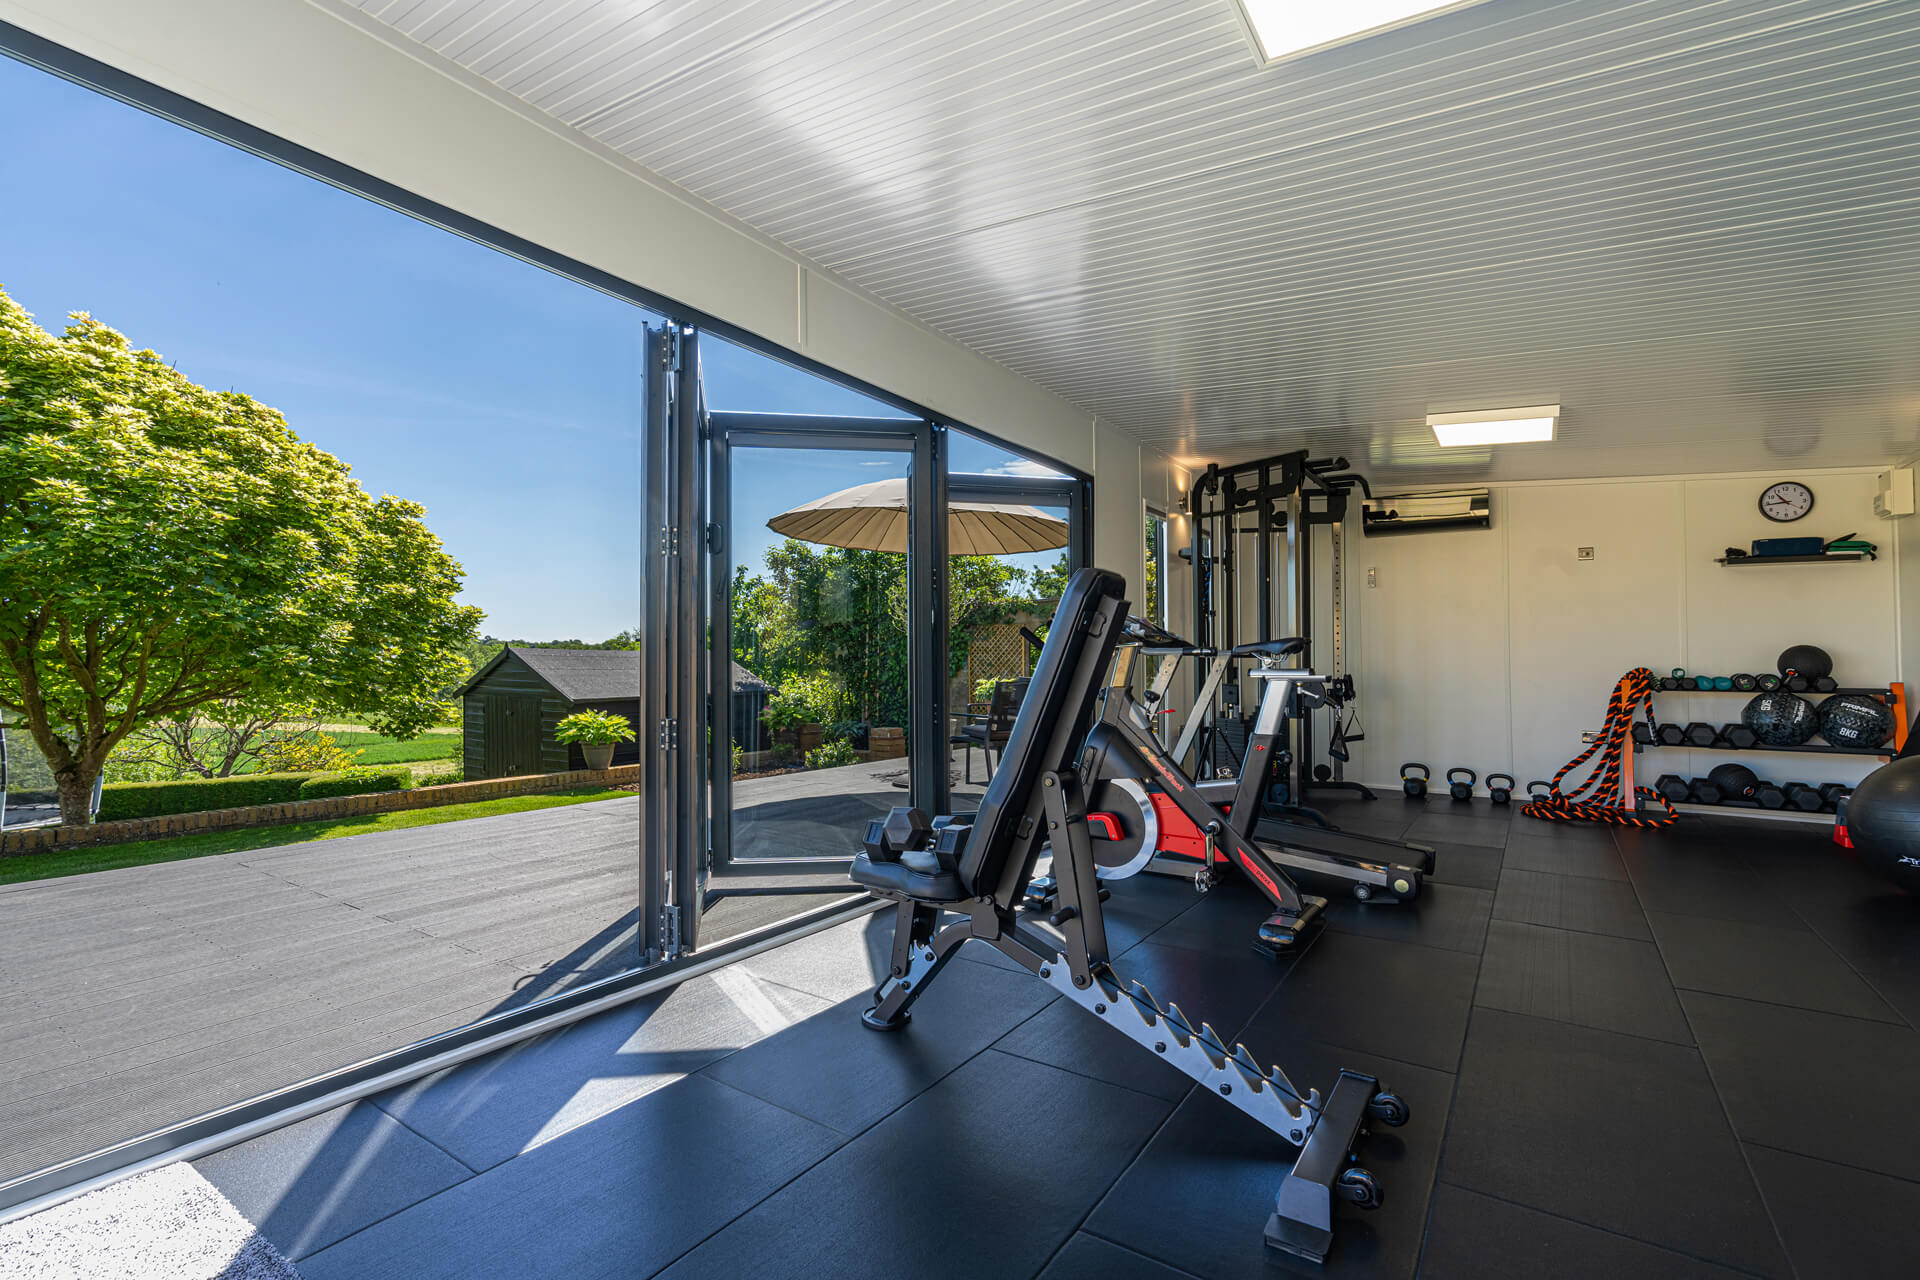 Home gym with bifold doors open on decking and garden beyond a beautiful sunny day.